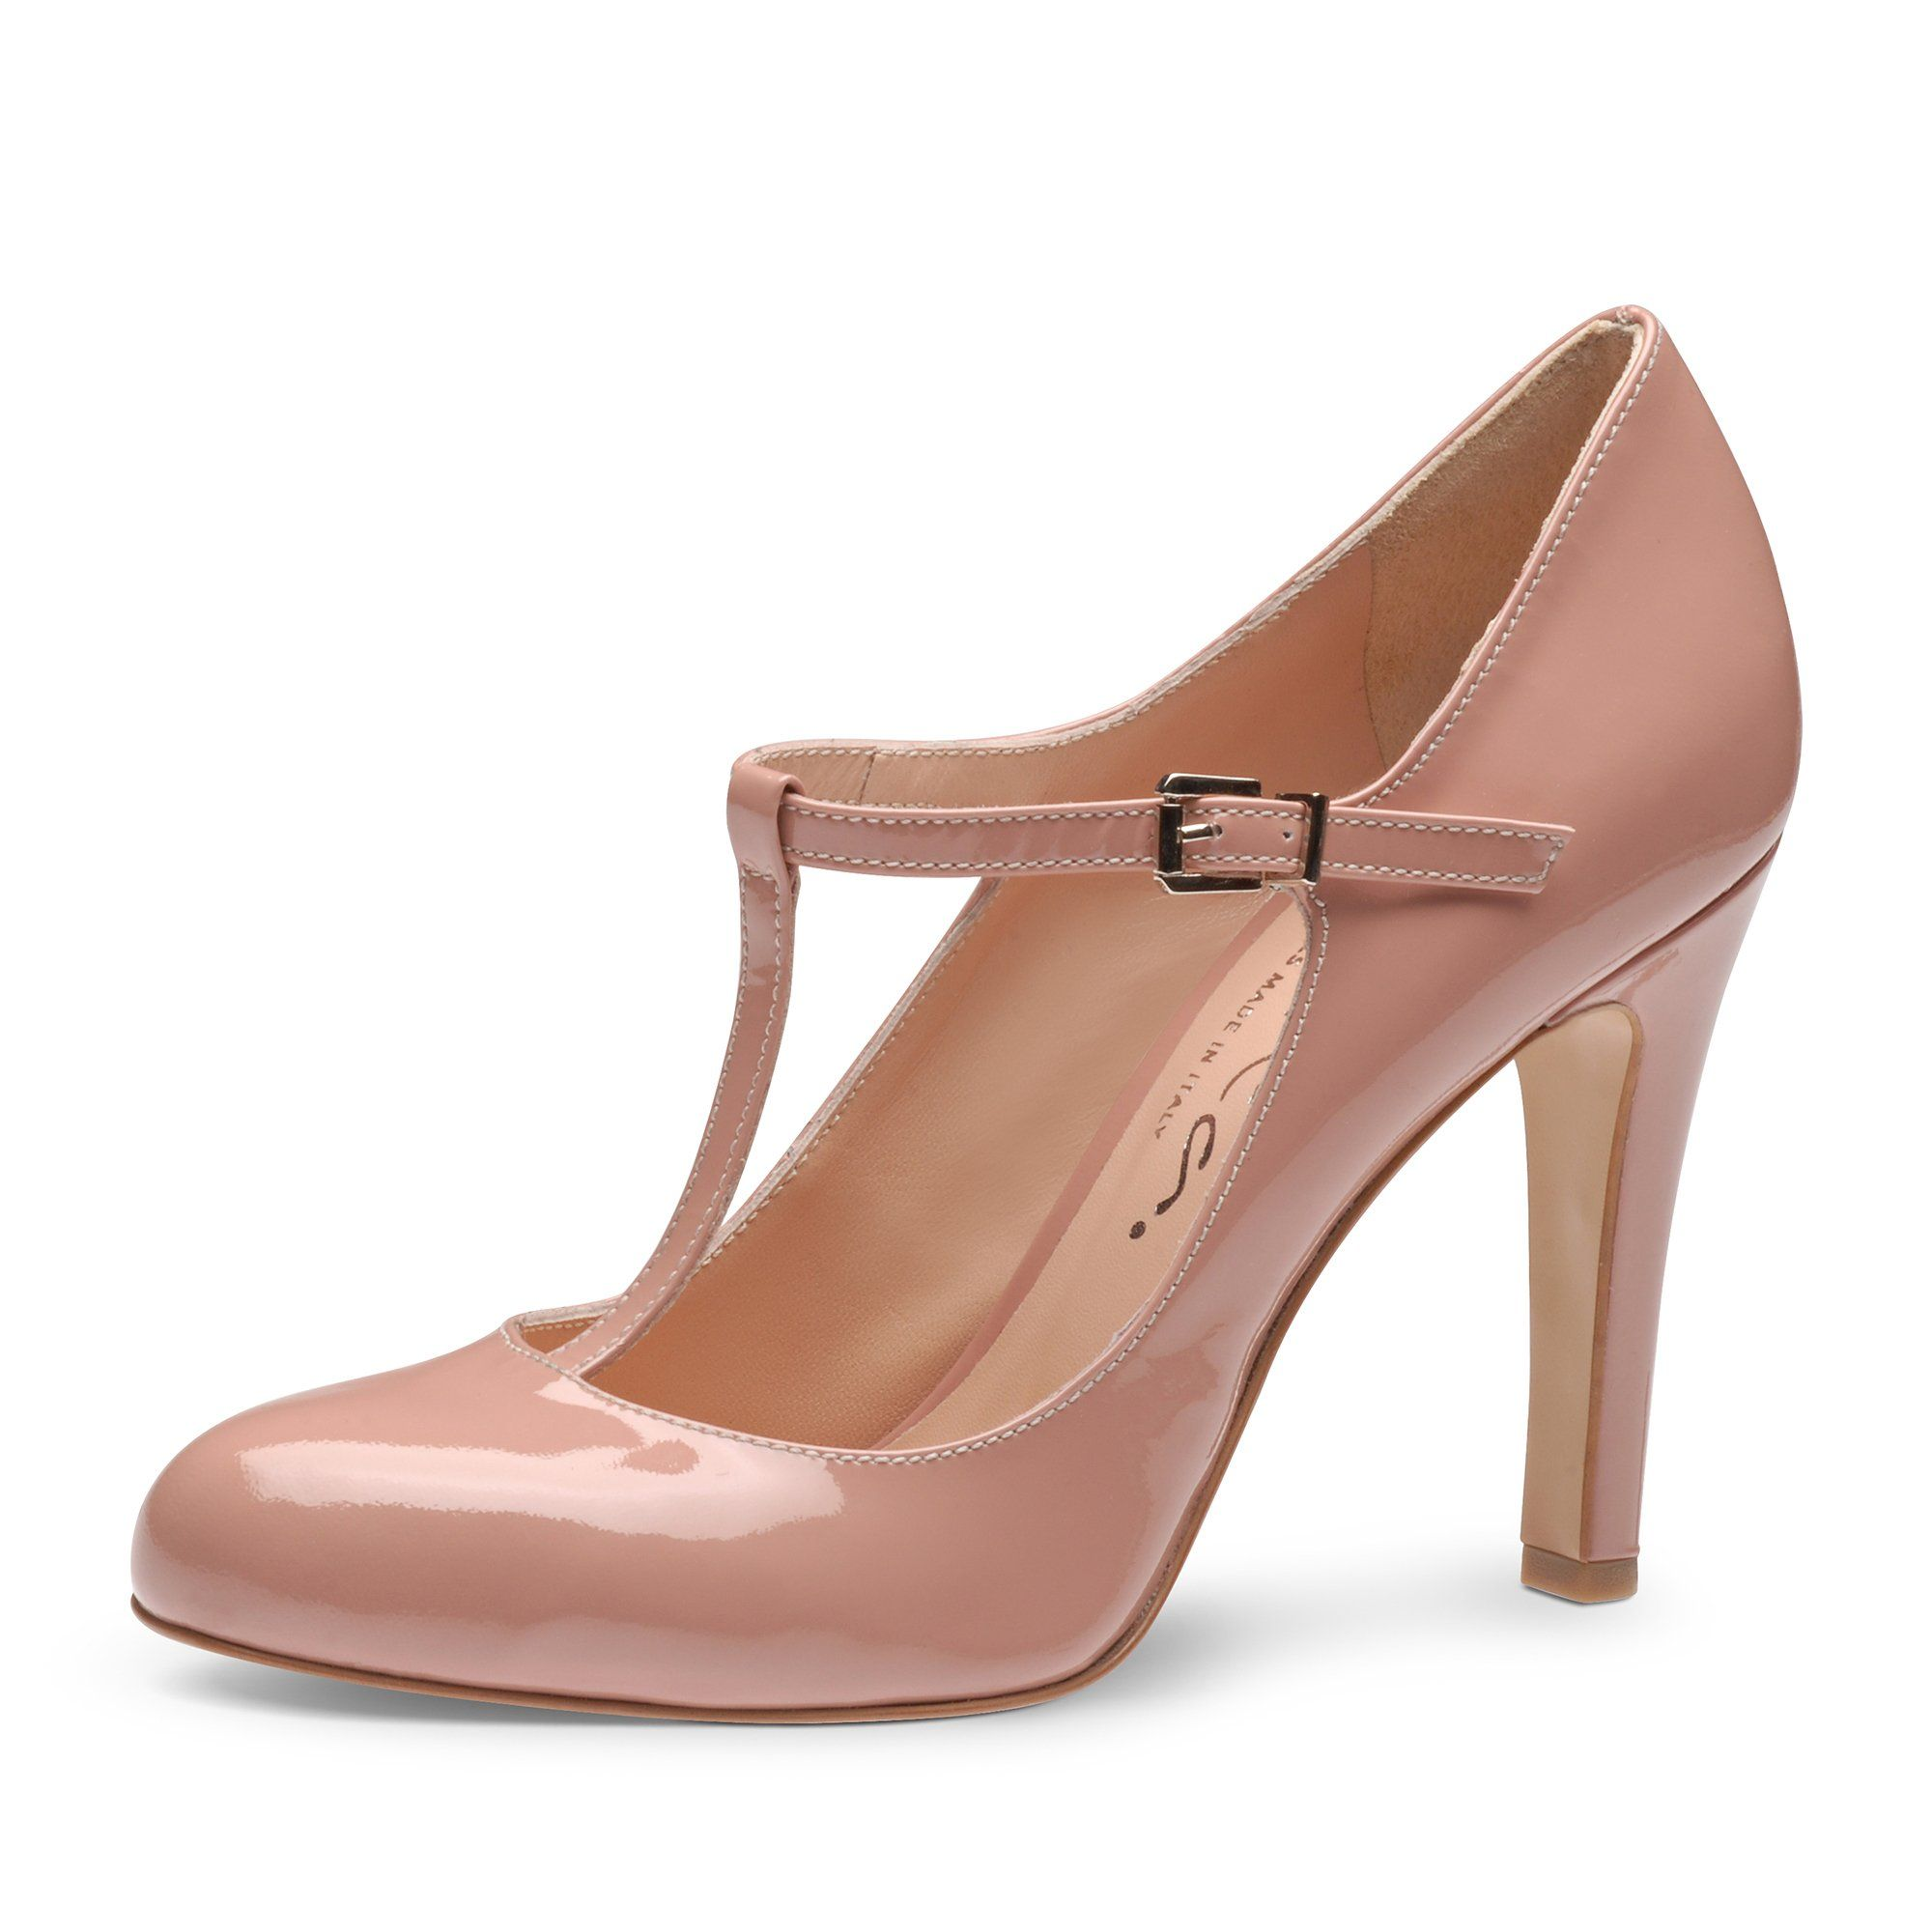 Chaussures Werner roses Fashion femme AWbHiOwkL